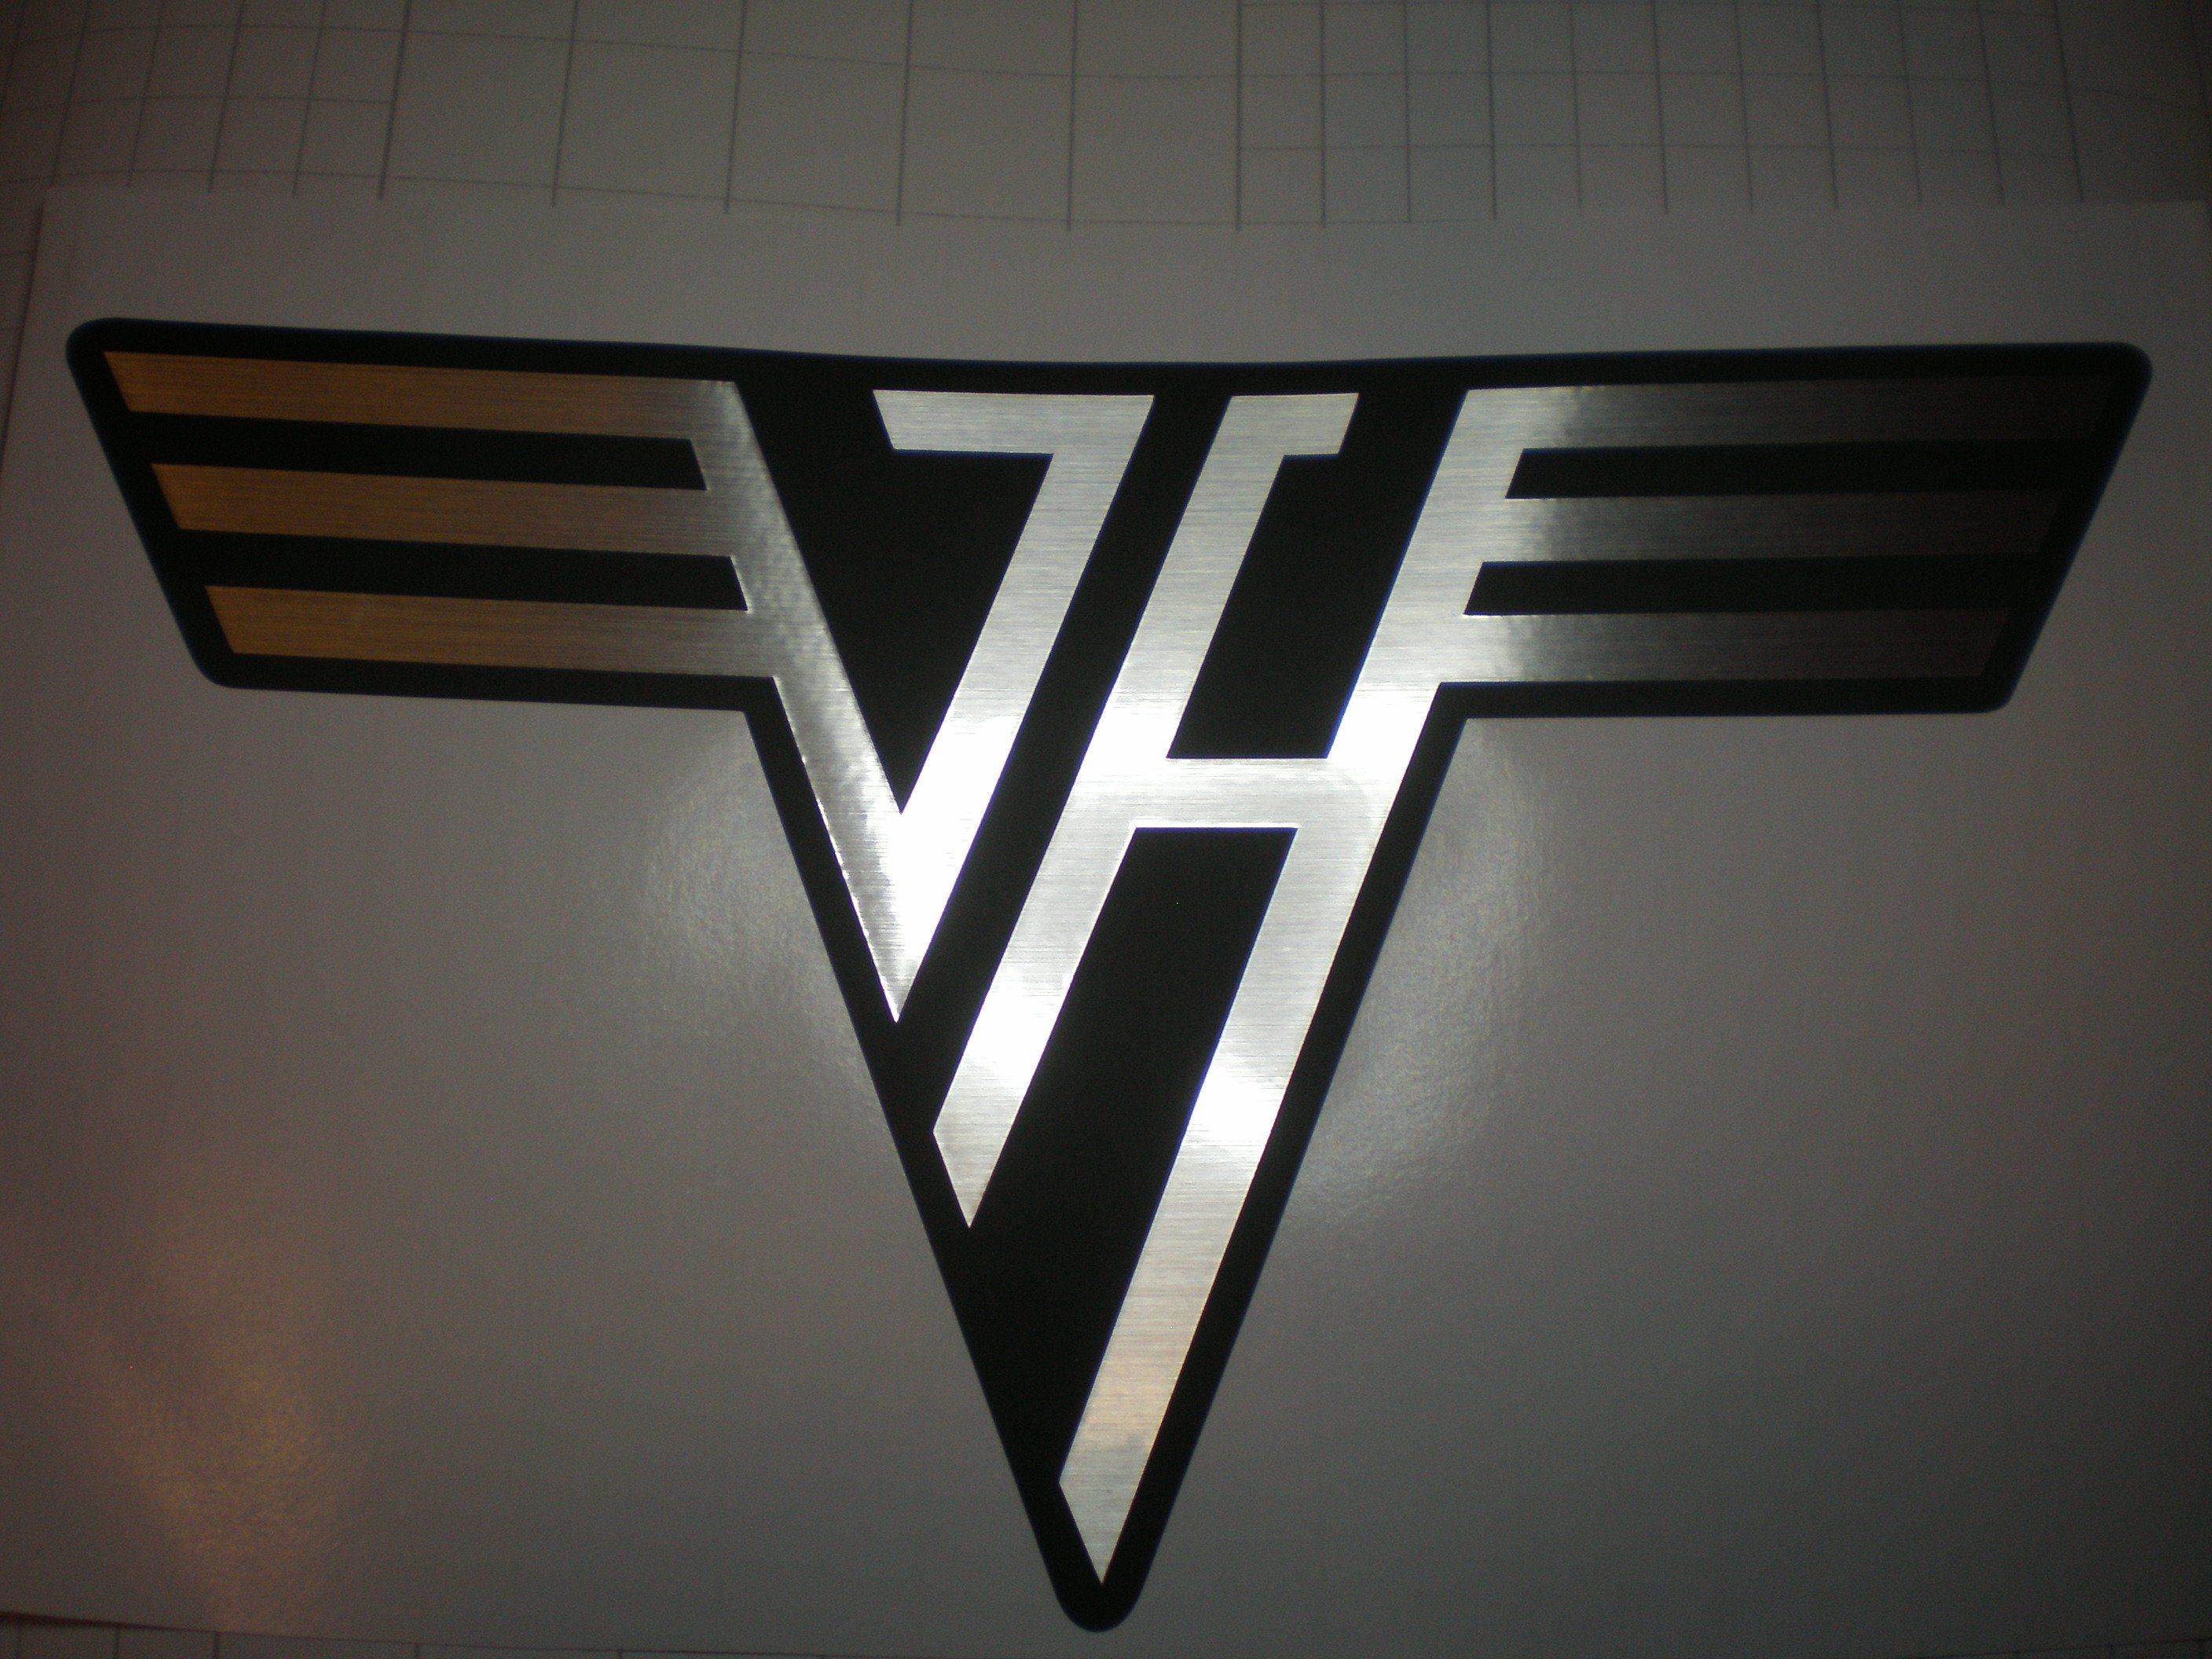 Van Halen Logo Permanent Vinyl Decal Laptop Decal Tablet Etsy Van Halen Logo Vinyl Decals Van Halen